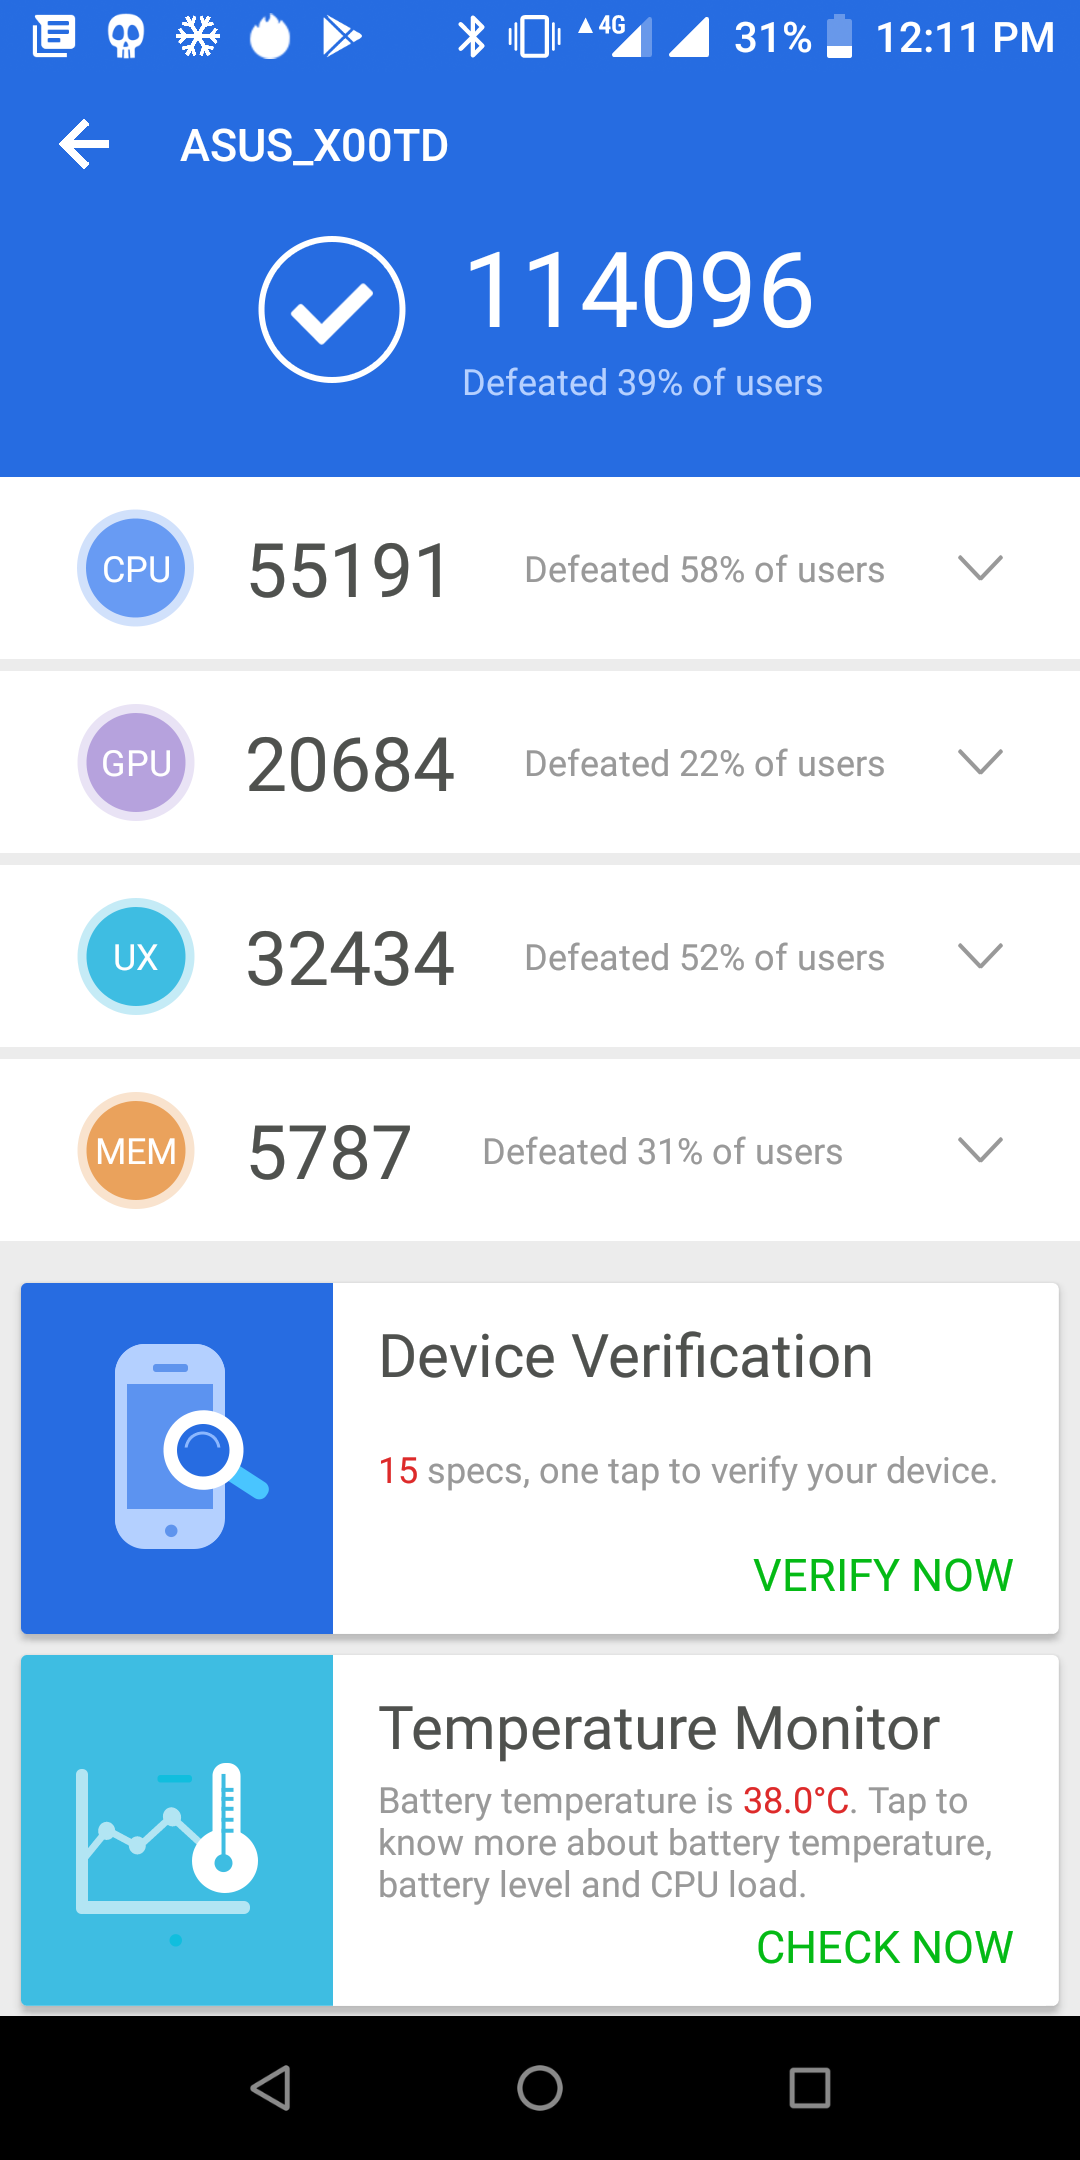 Asus ZenFone Max Pro M1 Benchmarks Images